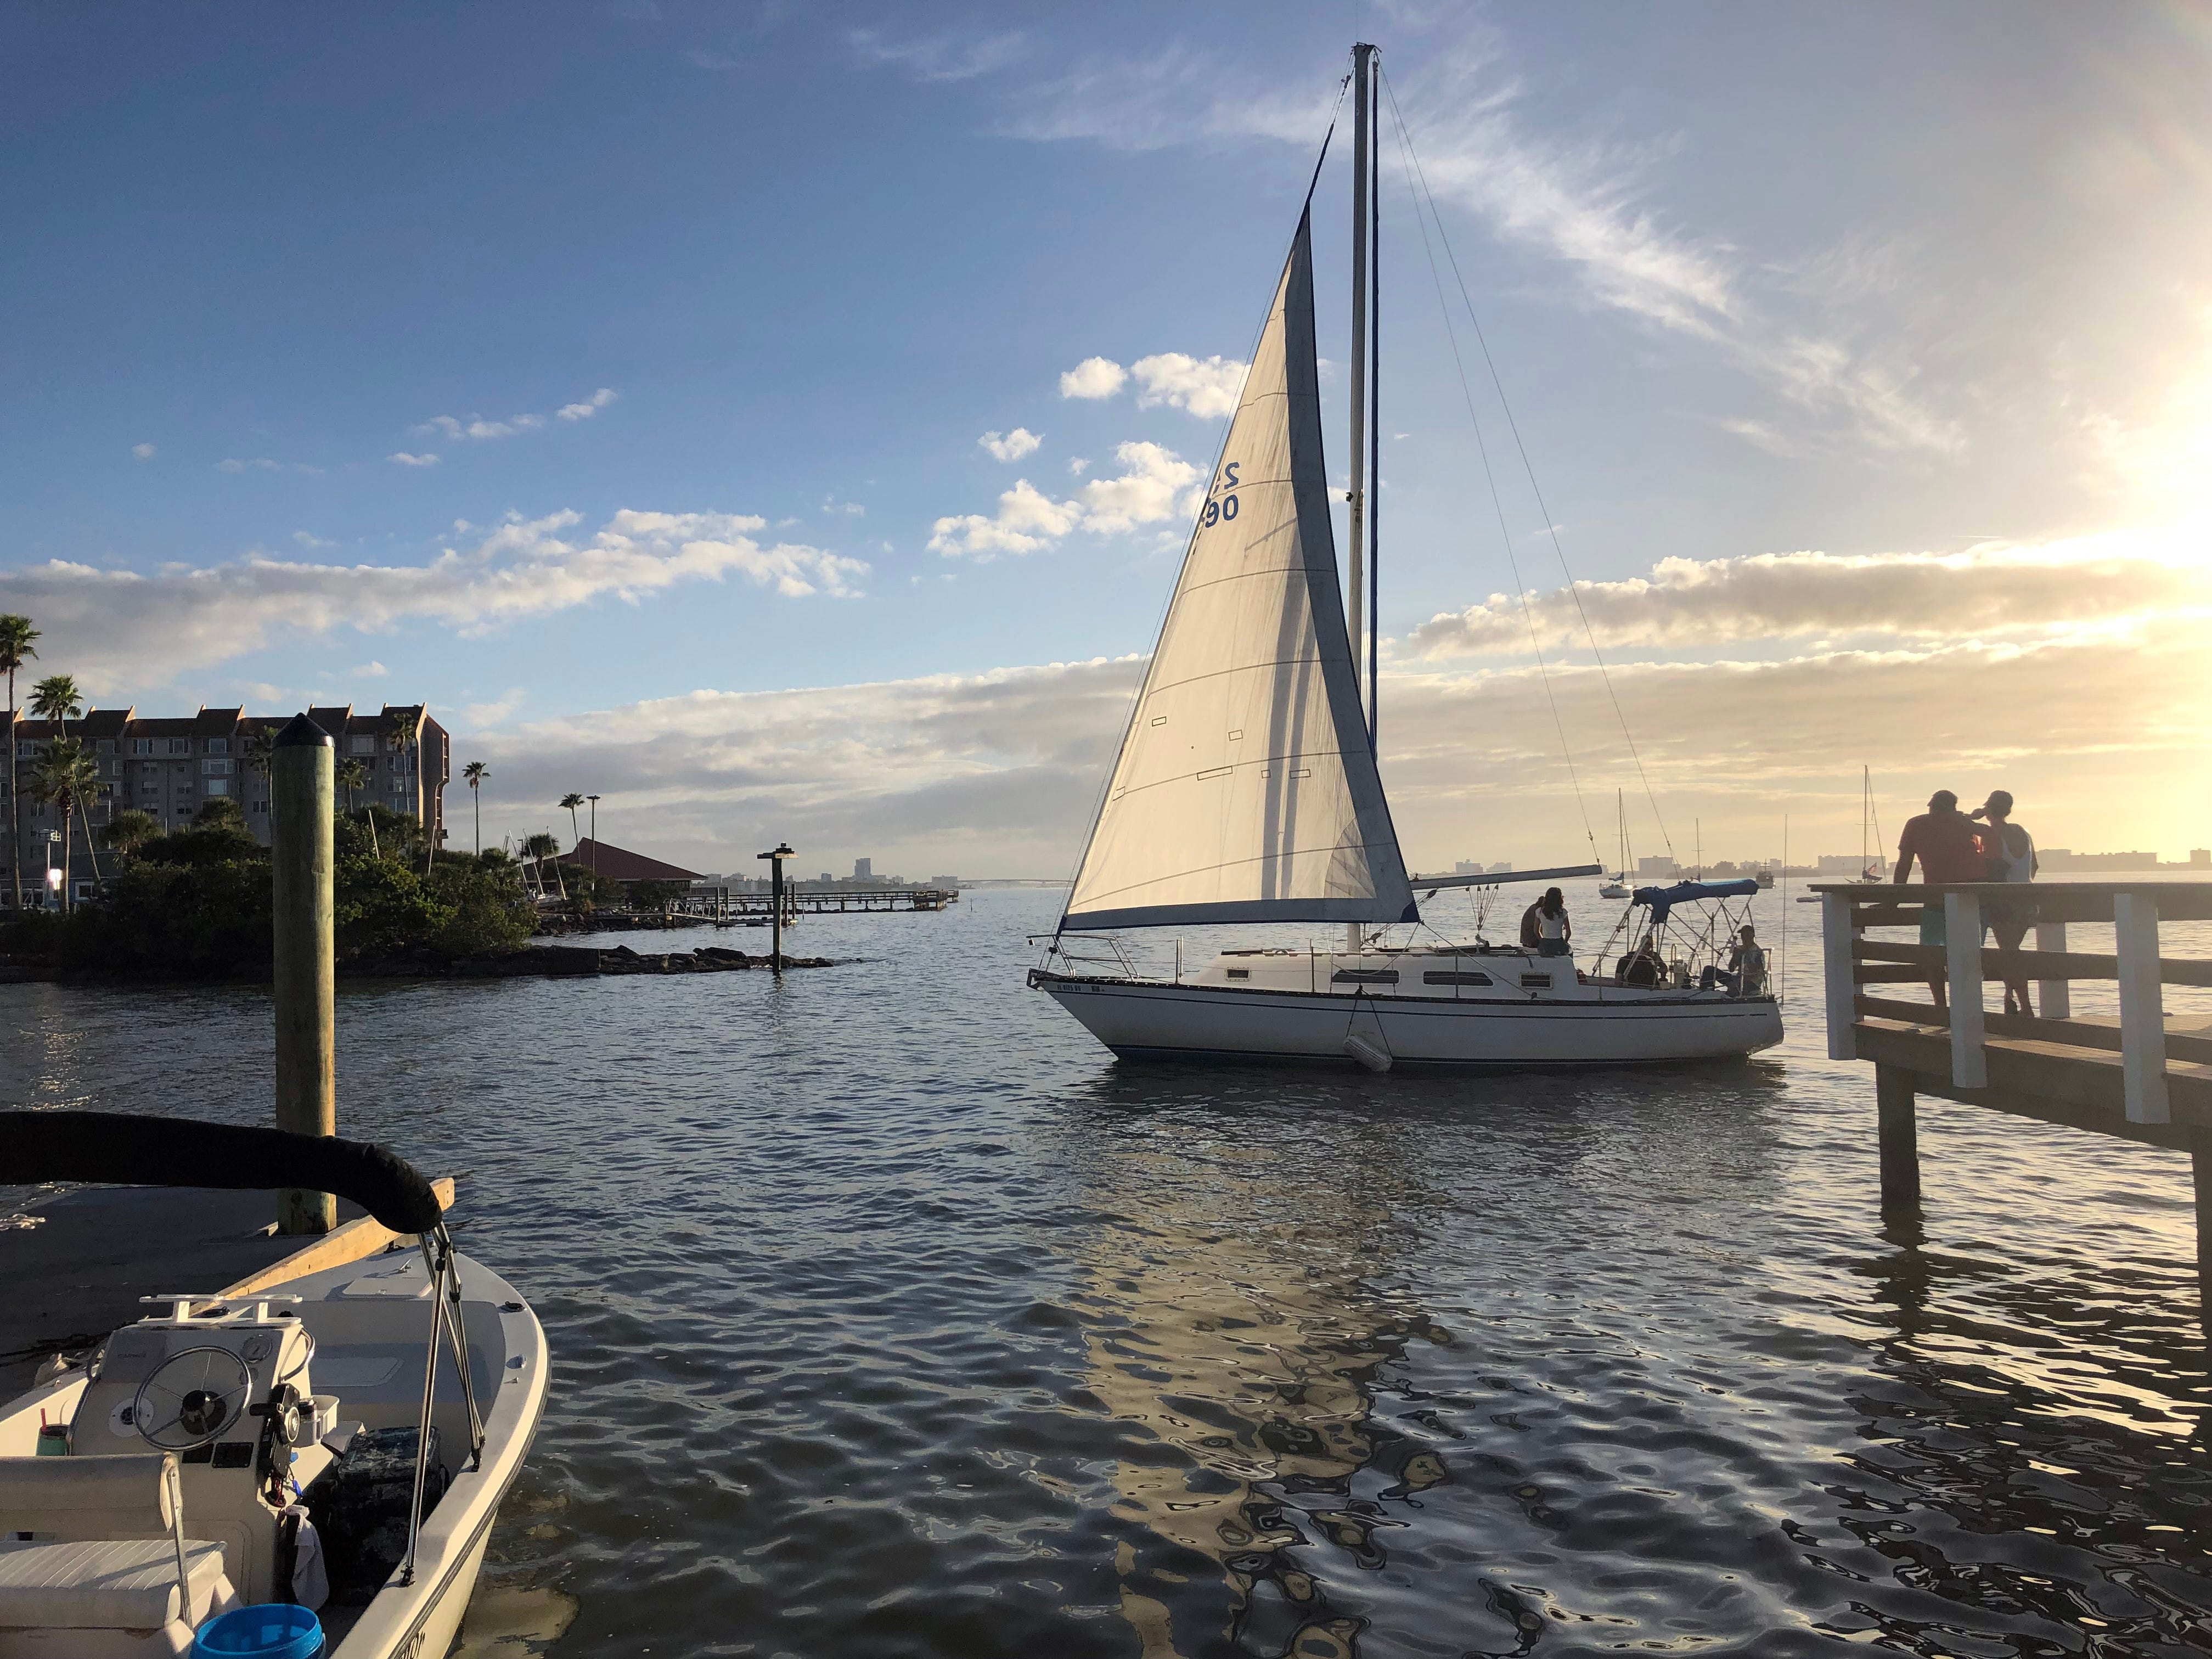 With winter in full swing, it's only natural to think of warmer weather and to start planning for summer vacation.  A great destination might be Tampa, Fla.